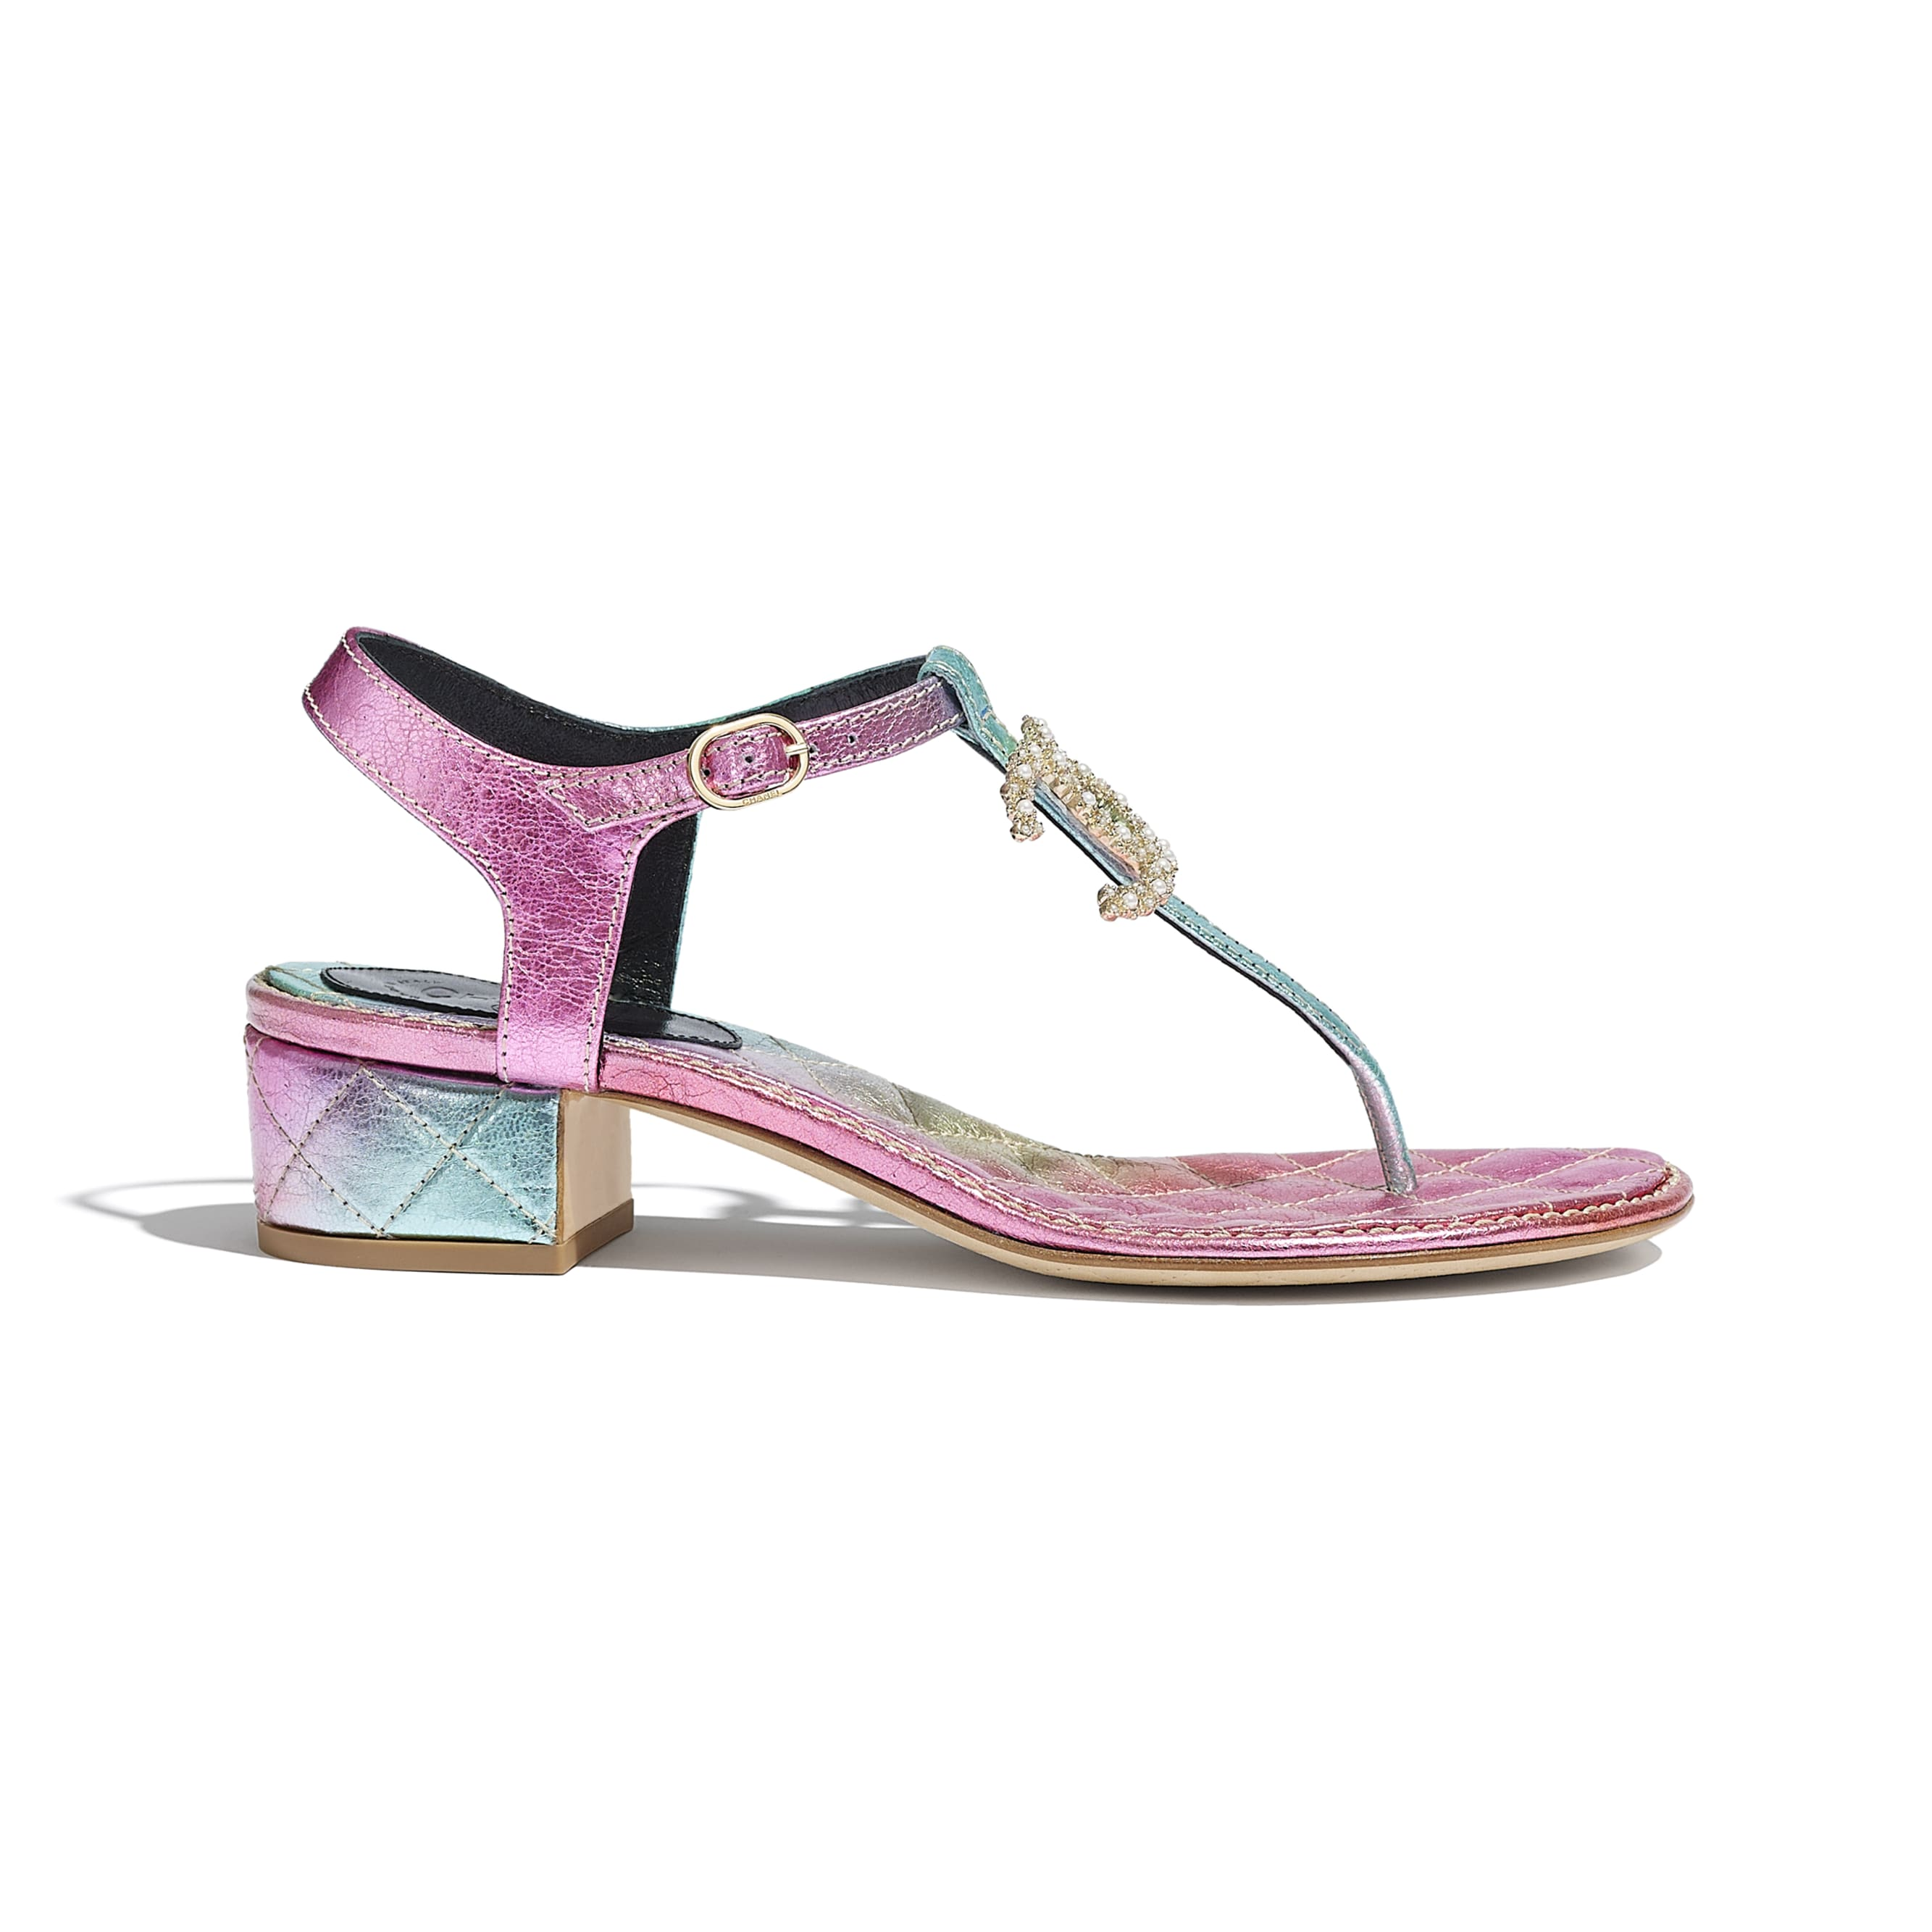 Sandals - Multicolour - Fantasy Goatskin - CHANEL - Default view - see standard sized version